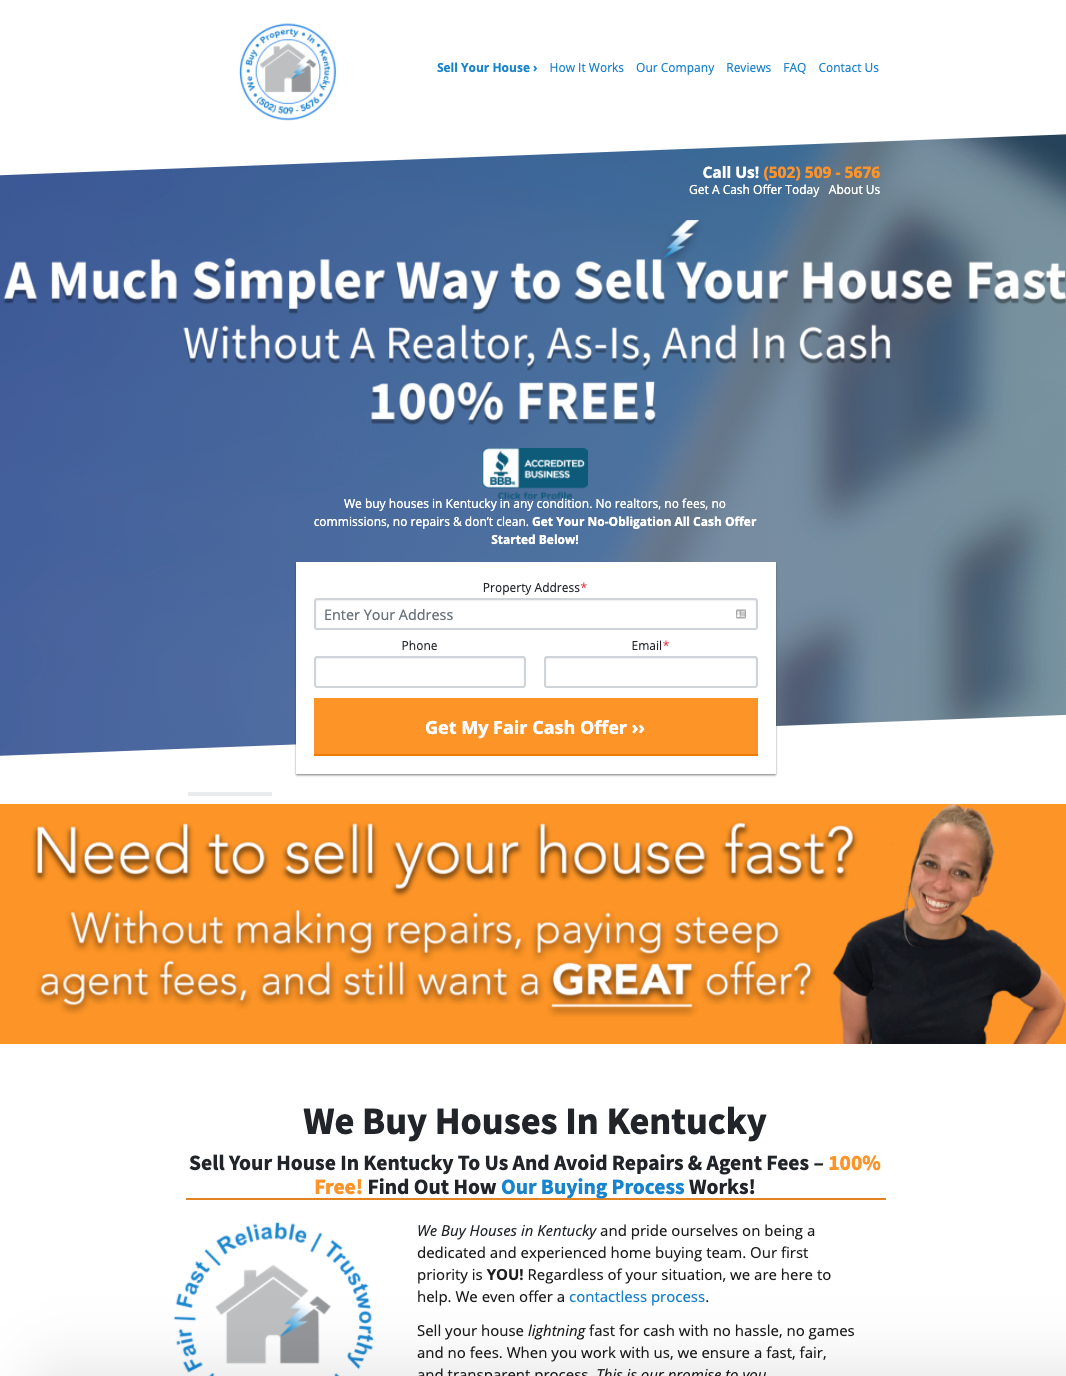 We Buy Property In Kentucky service page example